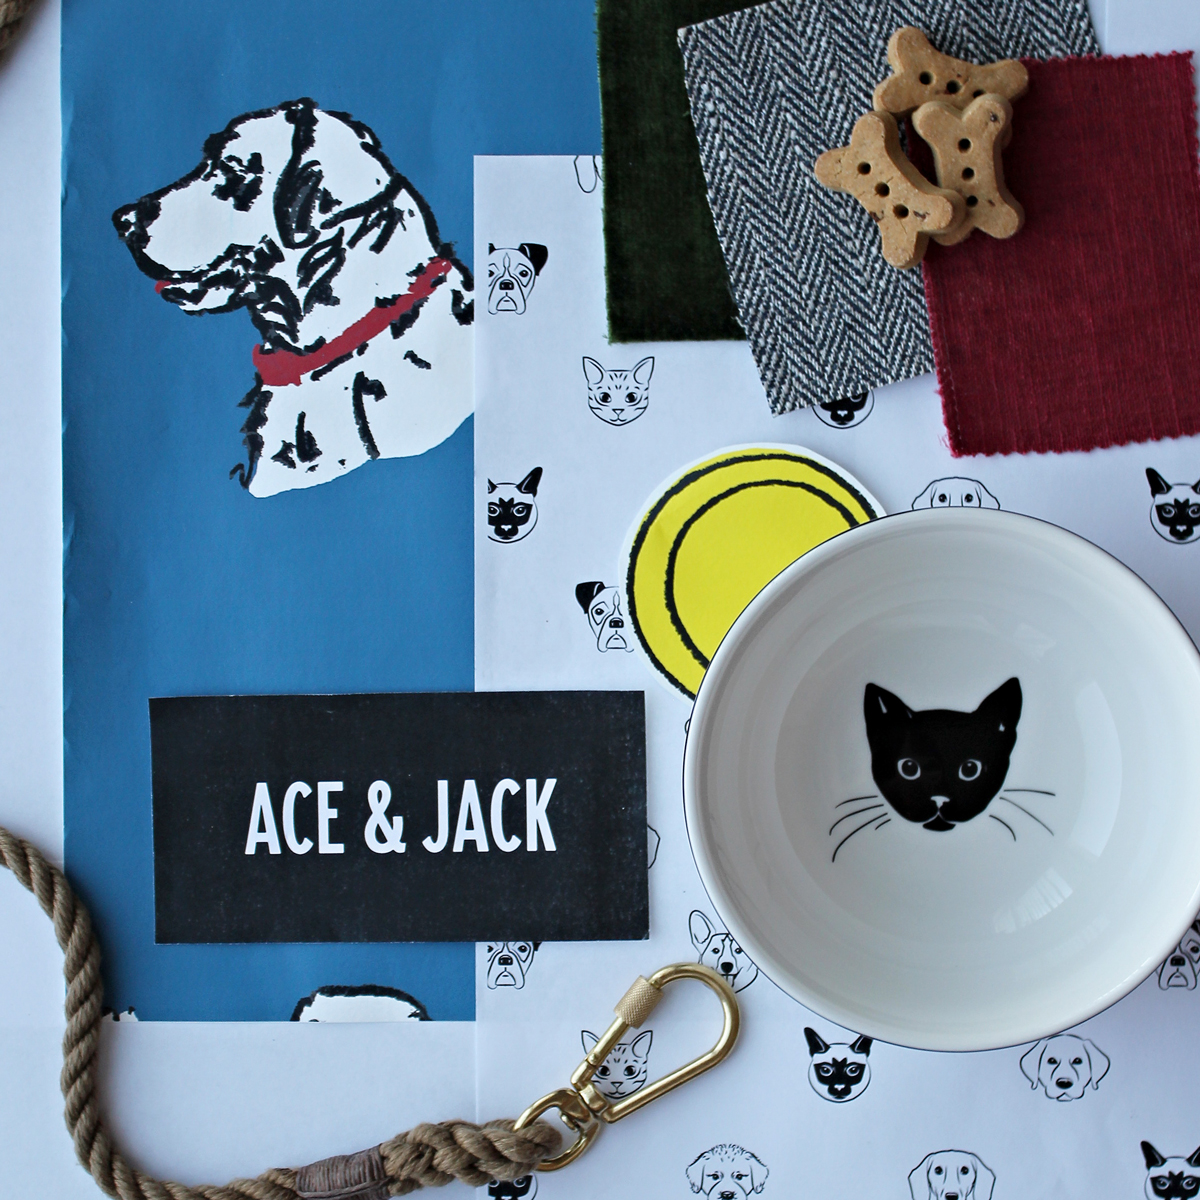 Ace & Jack Ponce City Market